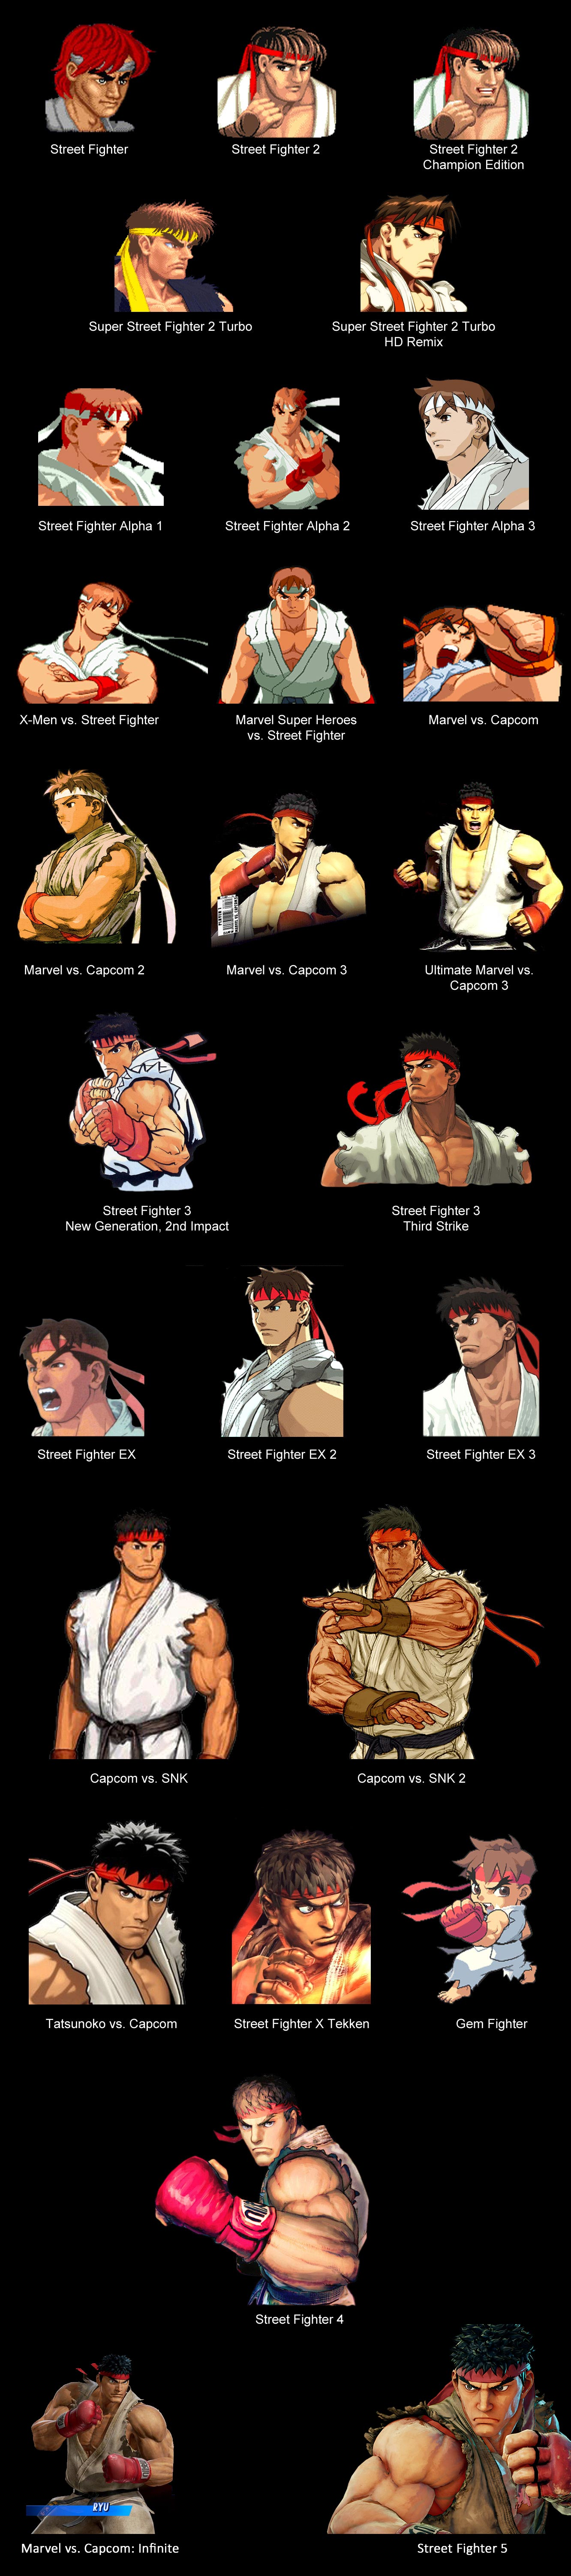 Ryu's visual history 1 out of 1 image gallery